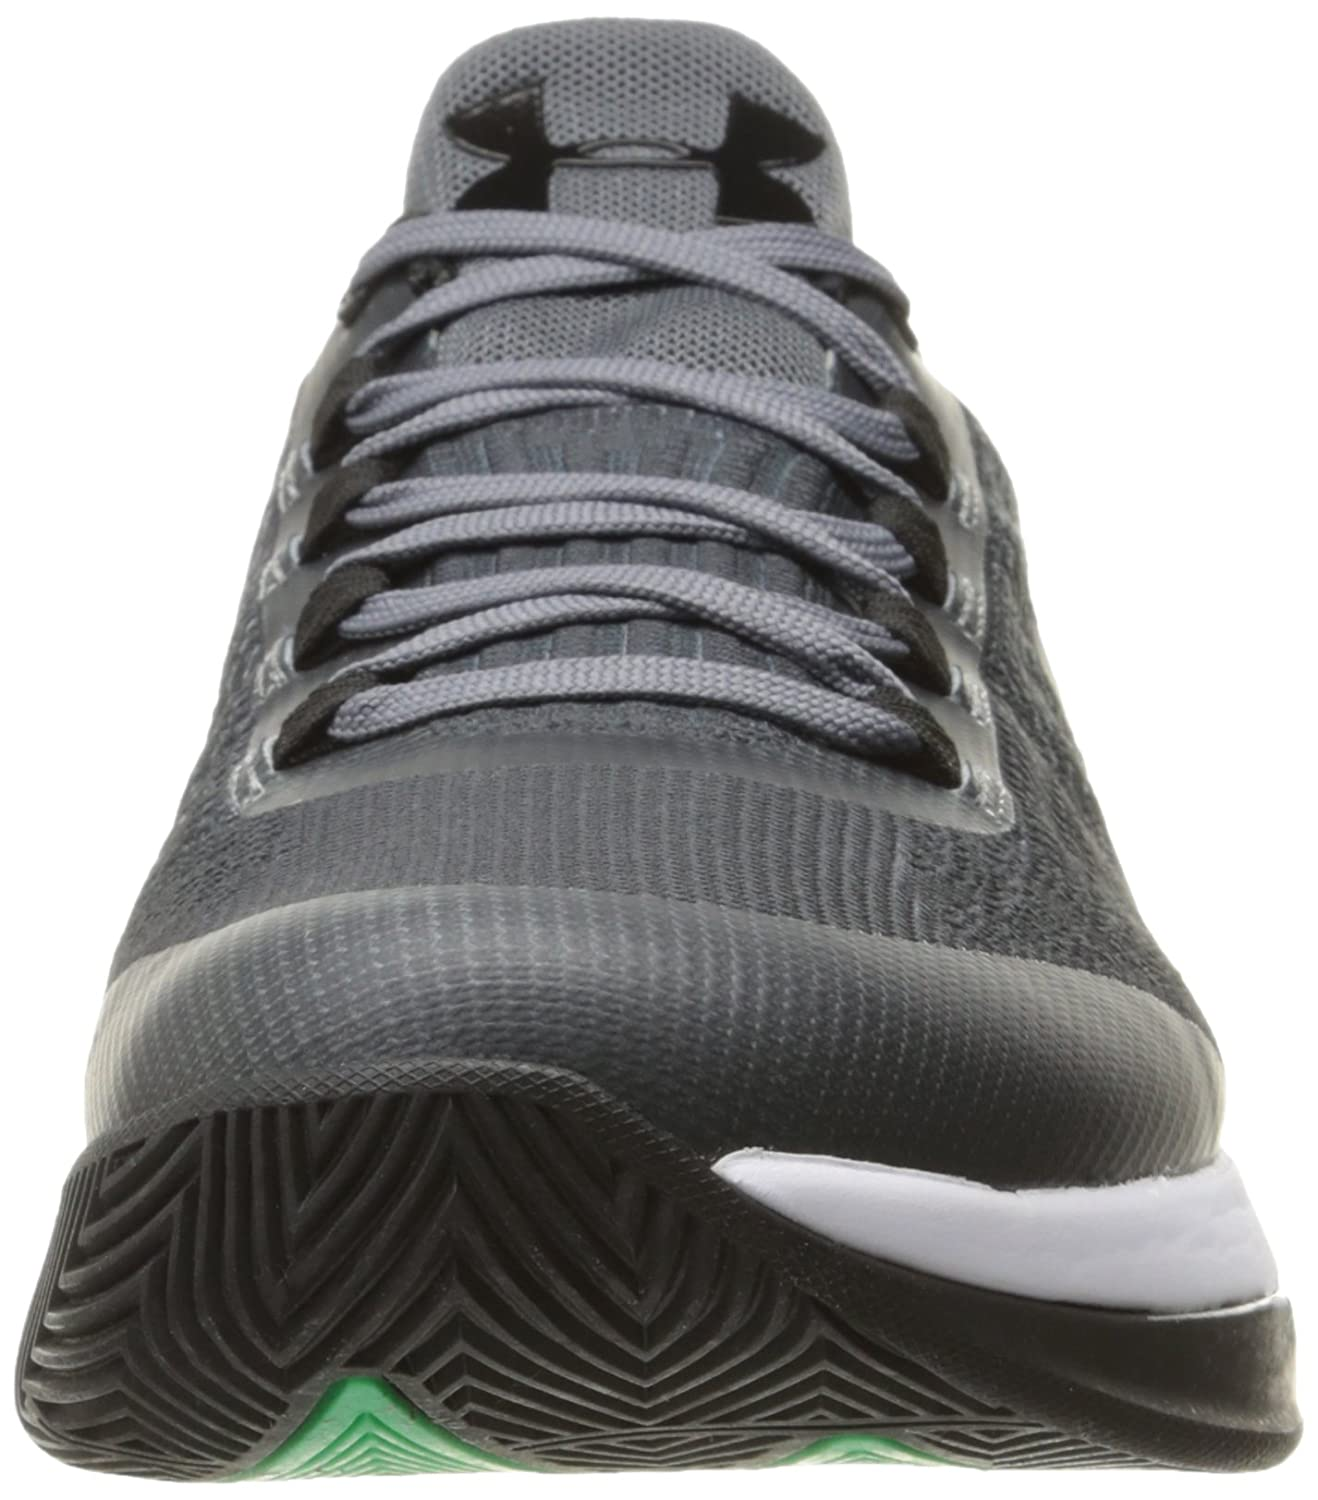 Under Armour Men s Charged Controller Basketball Shoe